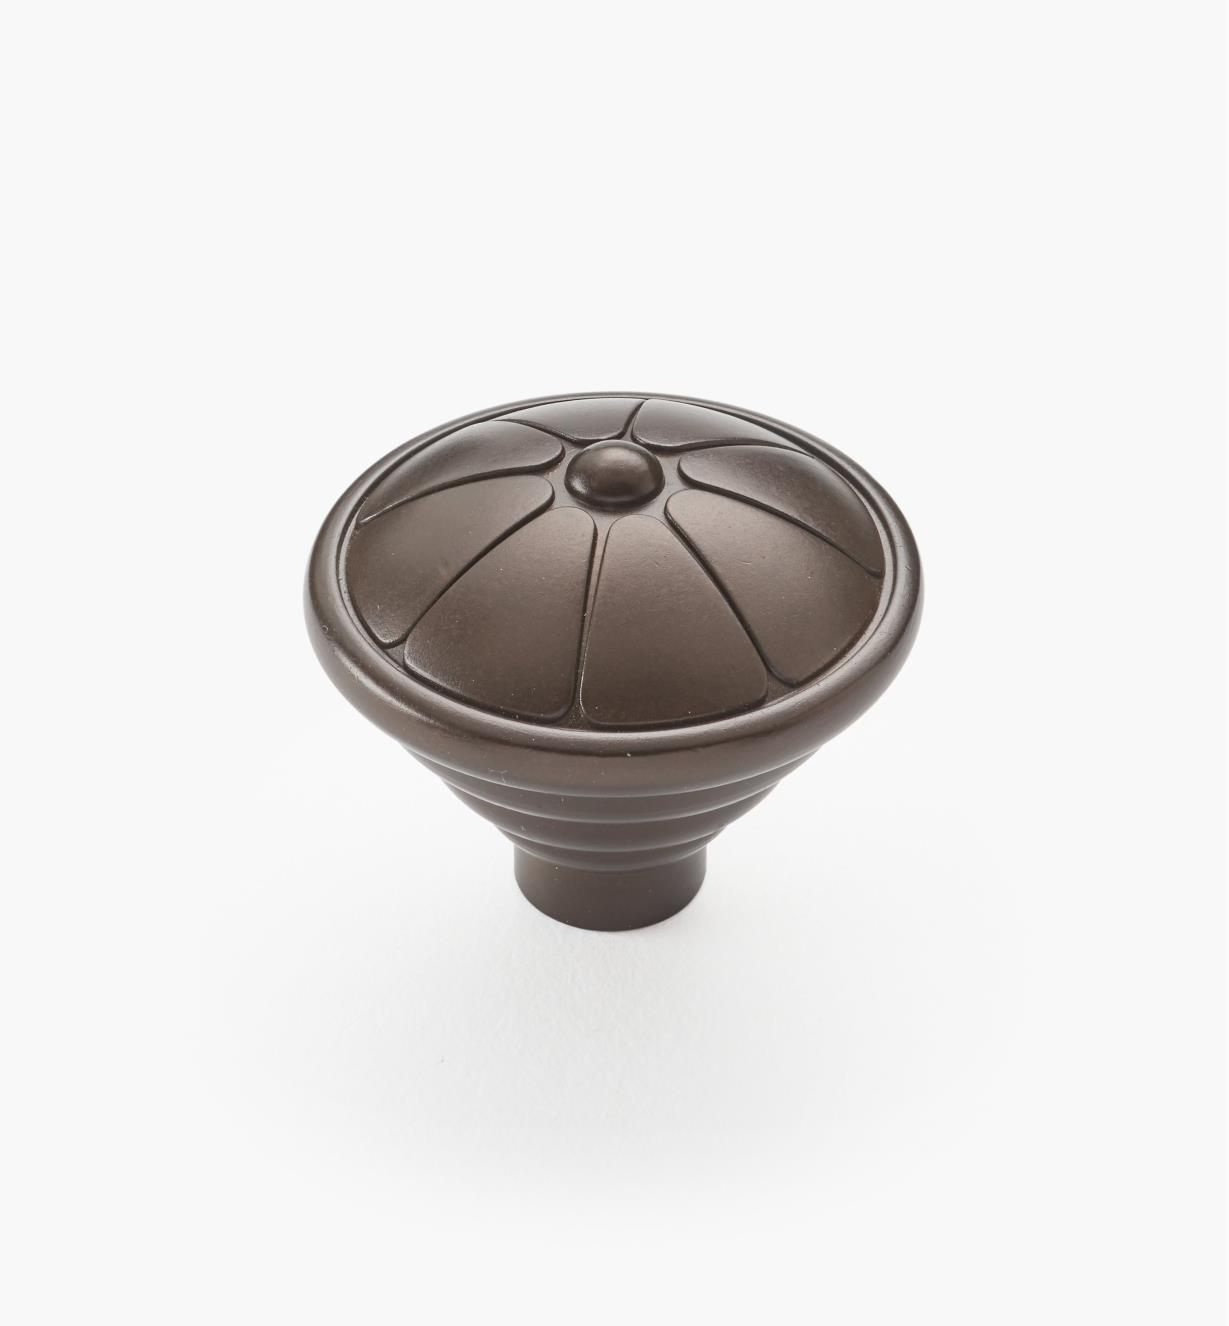 02W4094 - Oil-Rubbed Bronze Knob